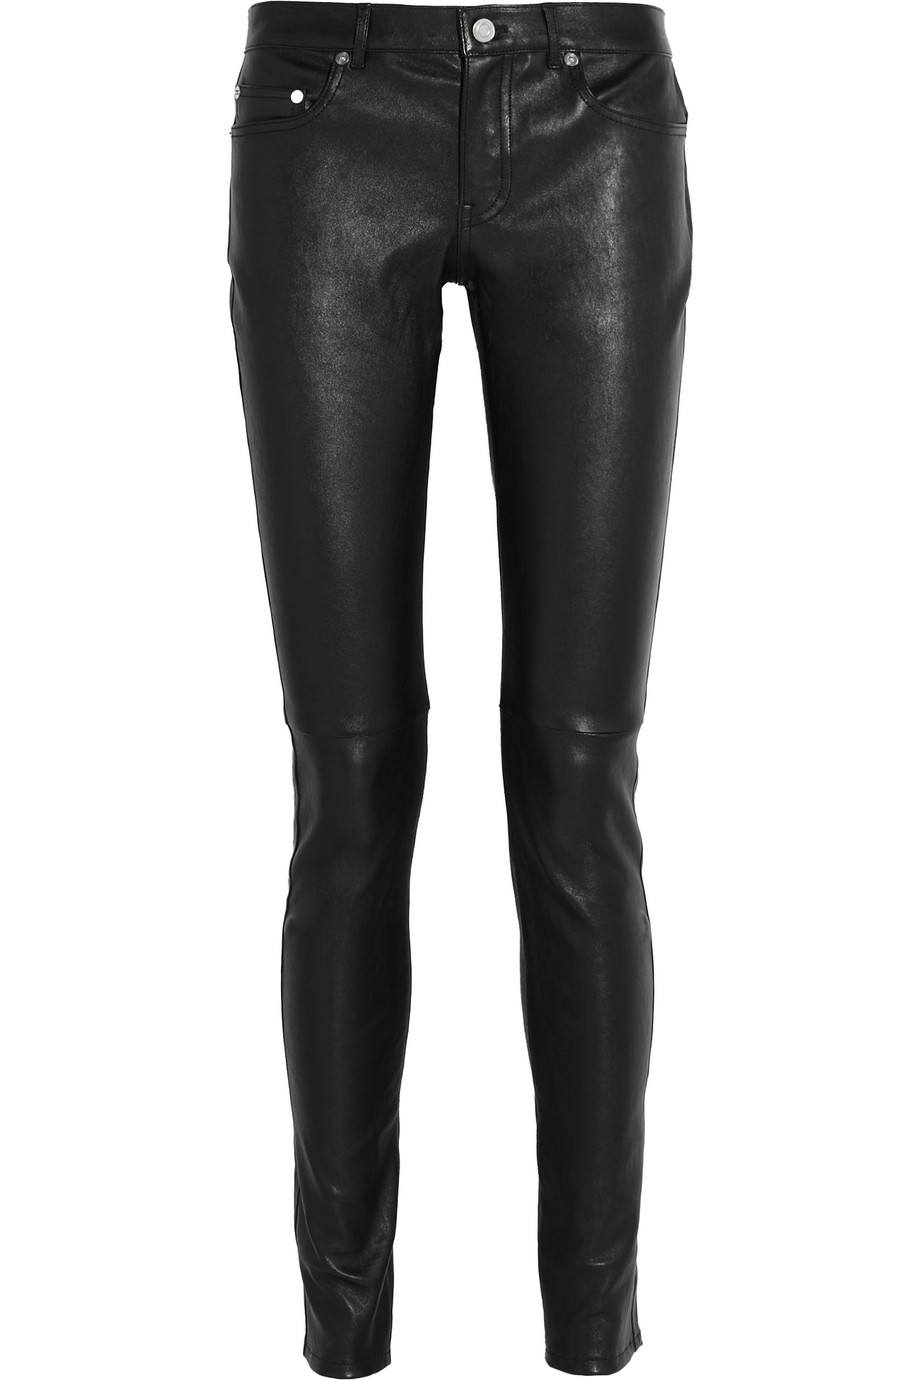 Saint Laurent Stretch-Leather Skinny Pants, Black, Women's, Size: 34